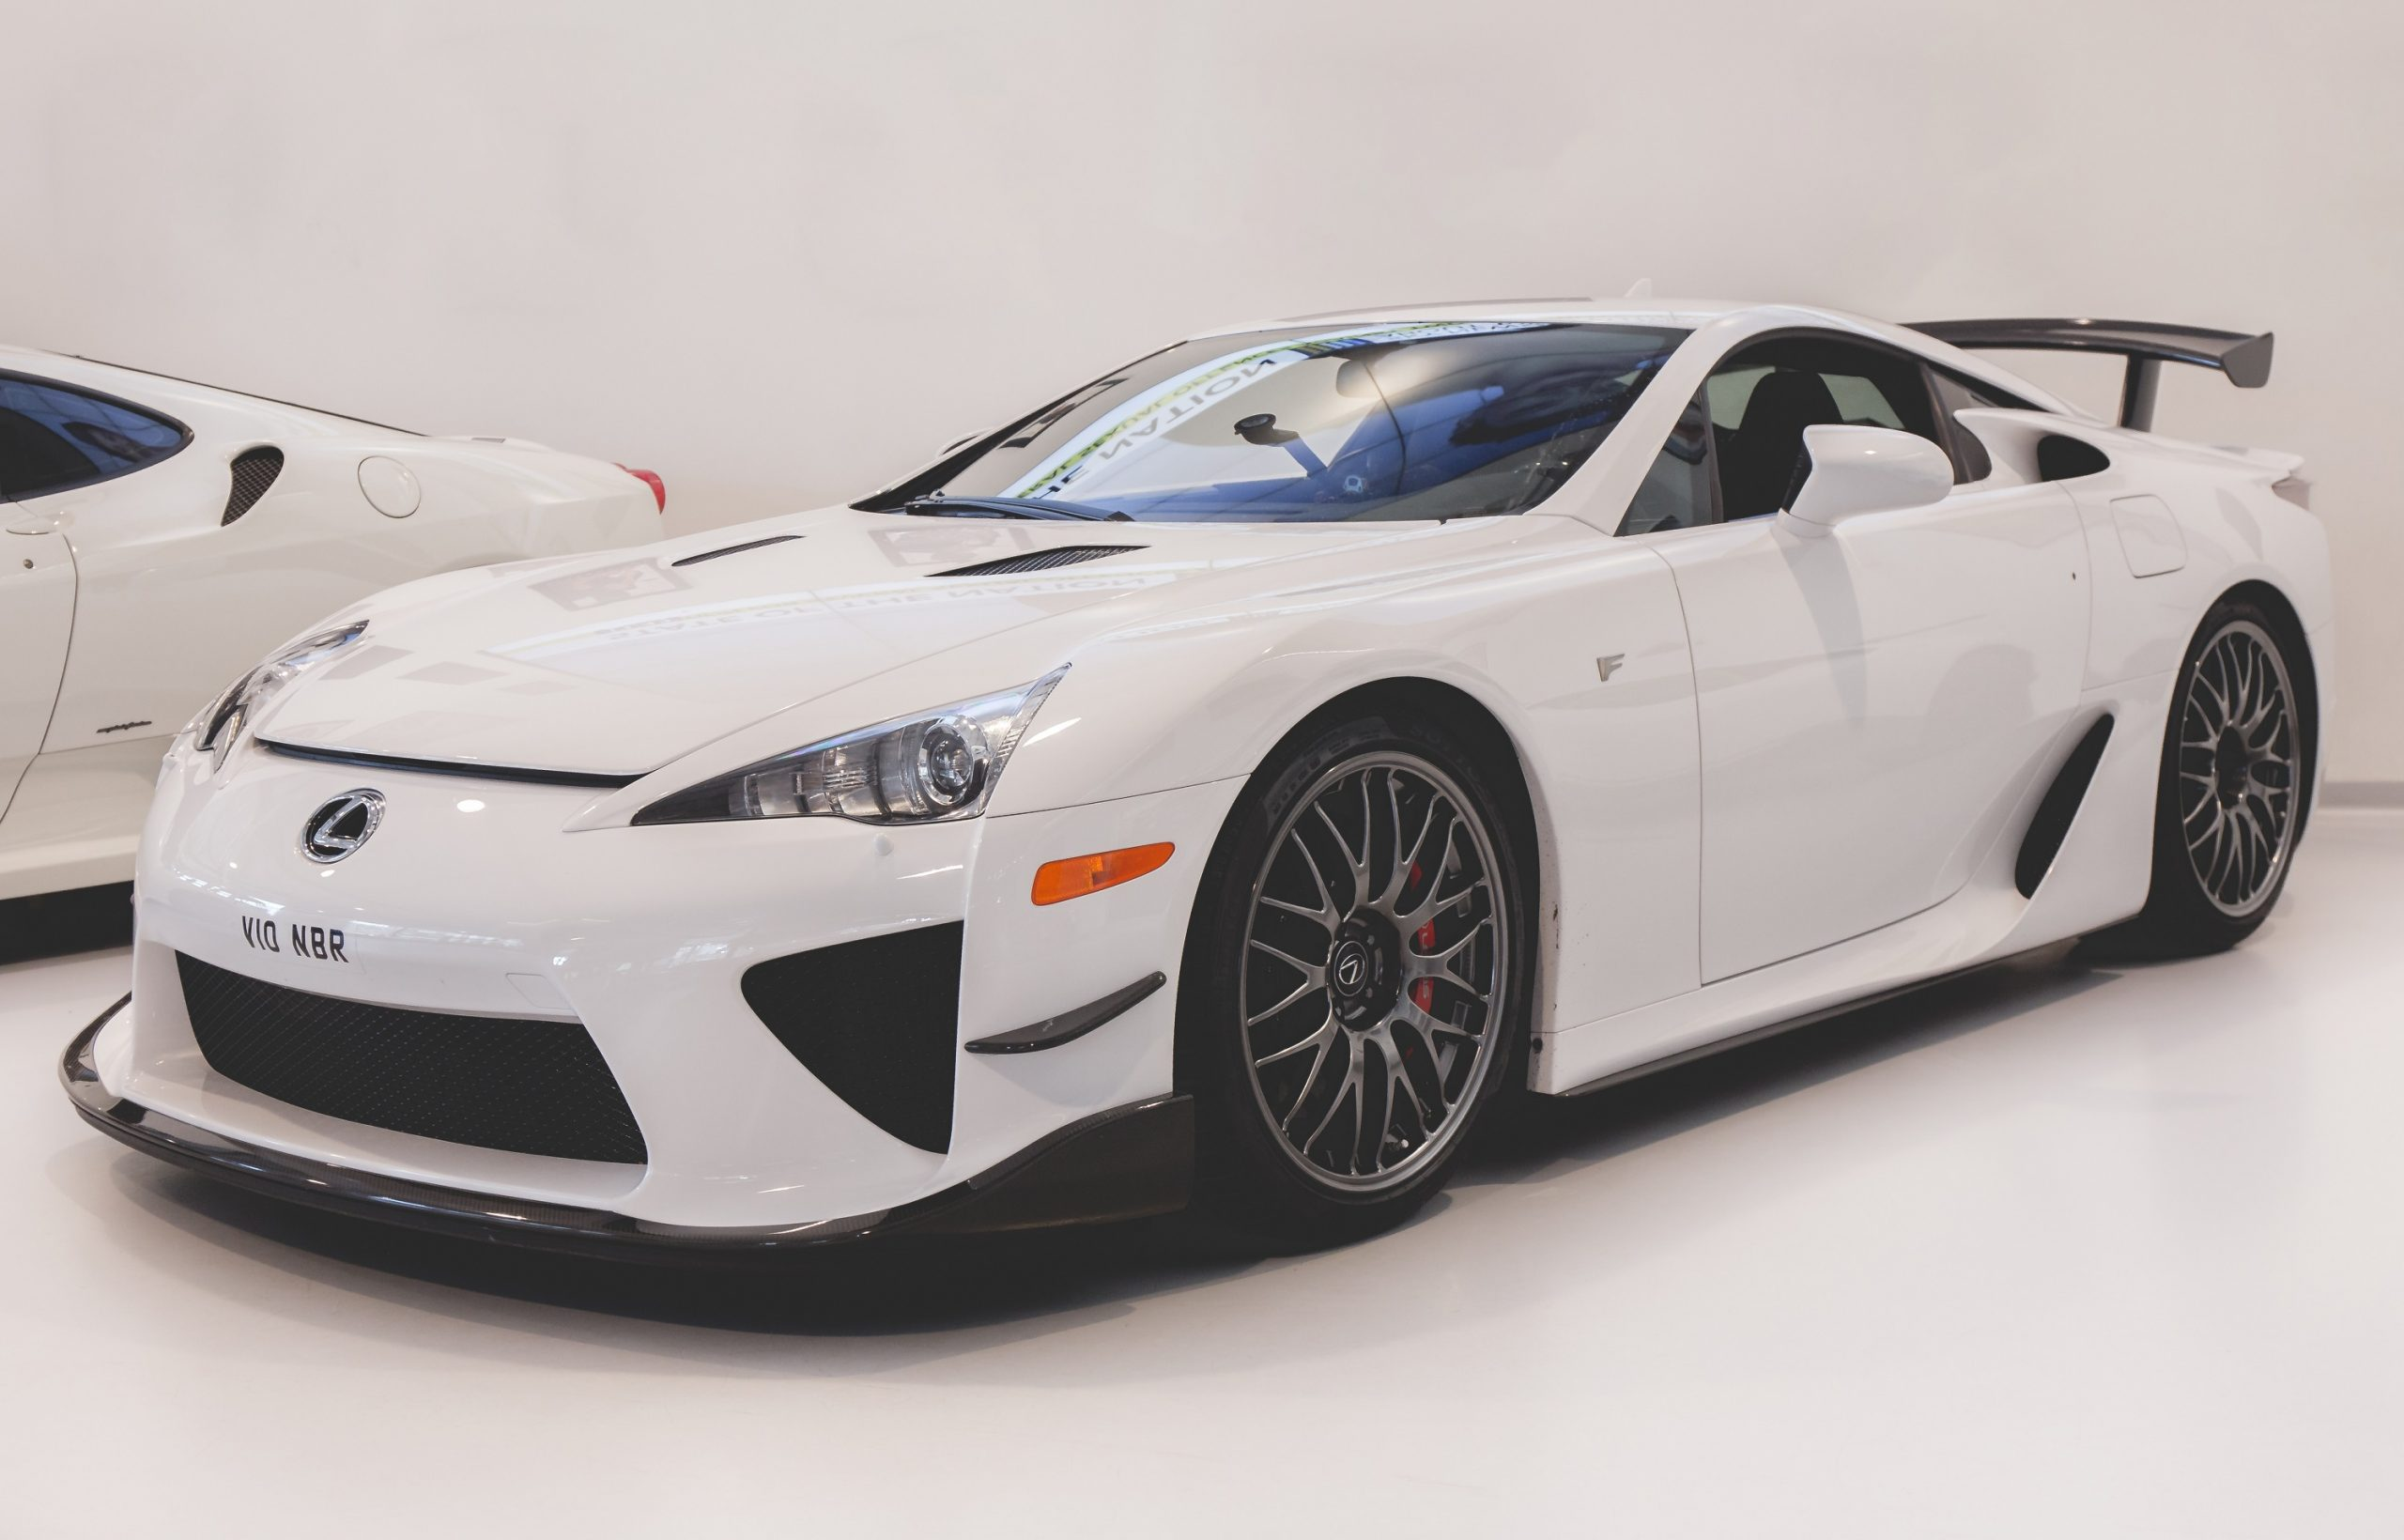 A white Lexus LFA Nurburgring edition shot from the front 3/4 angle